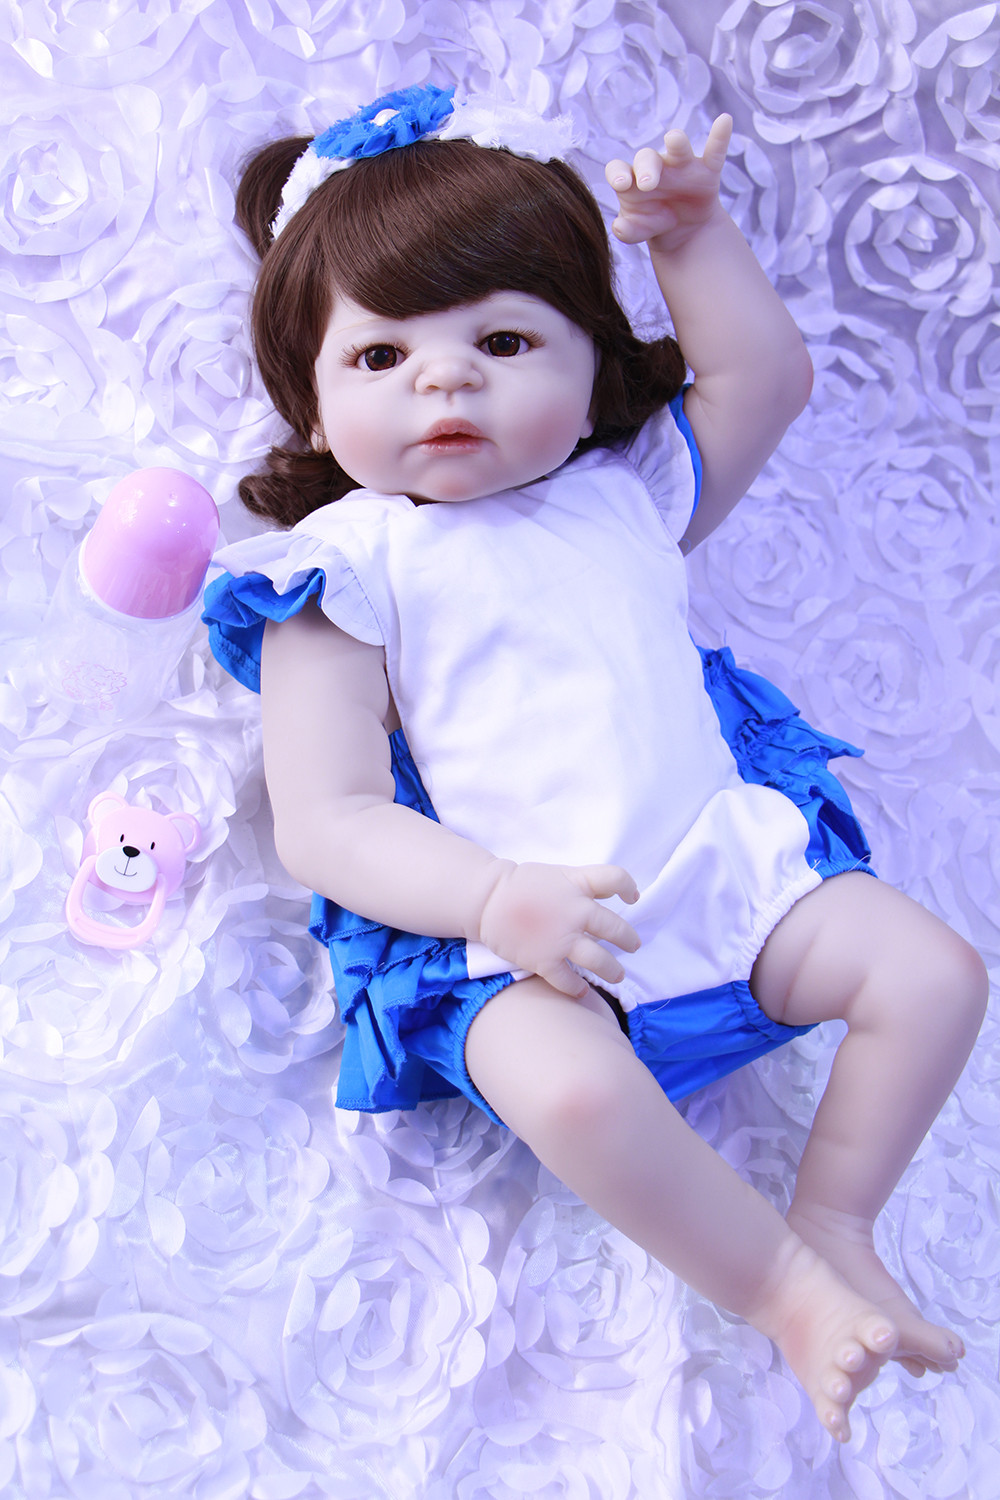 23inch full silicone Reborn Baby Doll Soft Lifelike Newborn Doll Girls Toy Birthday Gifts bathe dolls Bedtime Early Education23inch full silicone Reborn Baby Doll Soft Lifelike Newborn Doll Girls Toy Birthday Gifts bathe dolls Bedtime Early Education